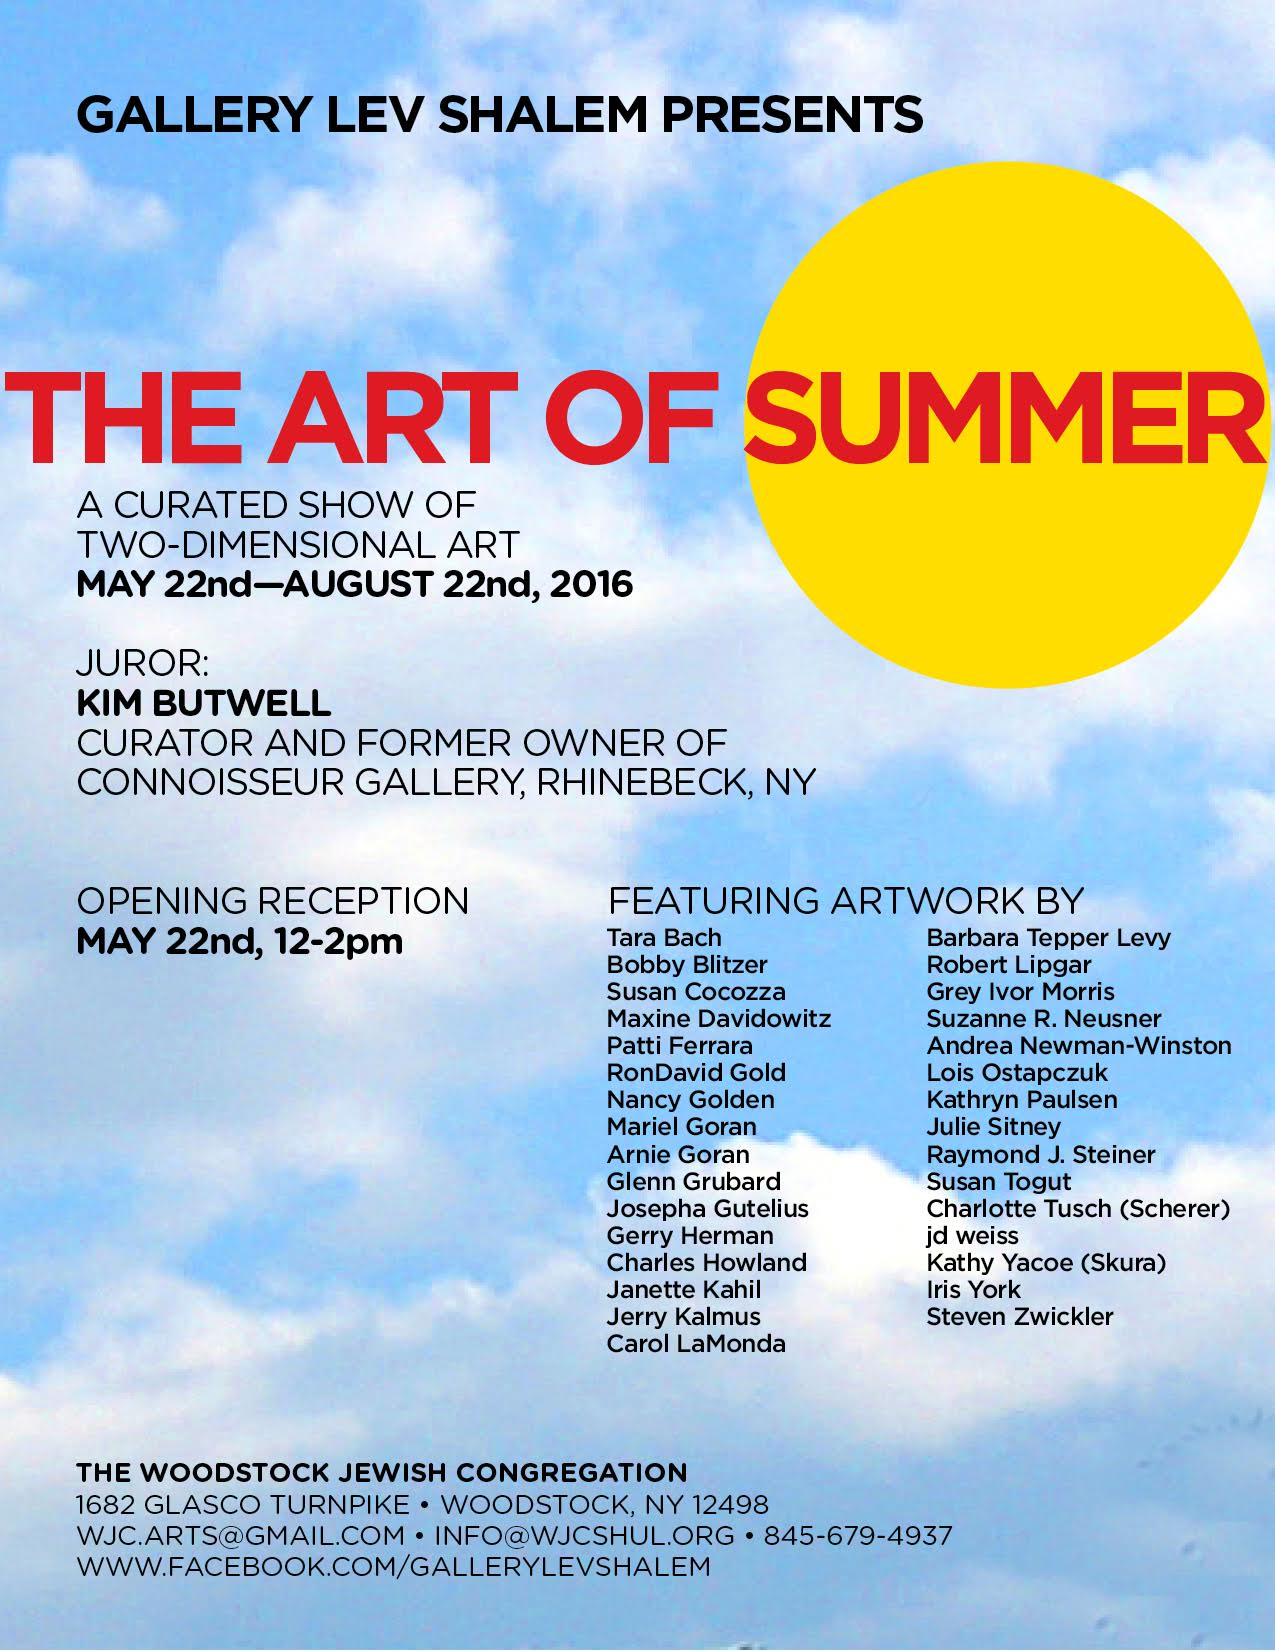 The Art of Summer: May 22-August 22, 2016